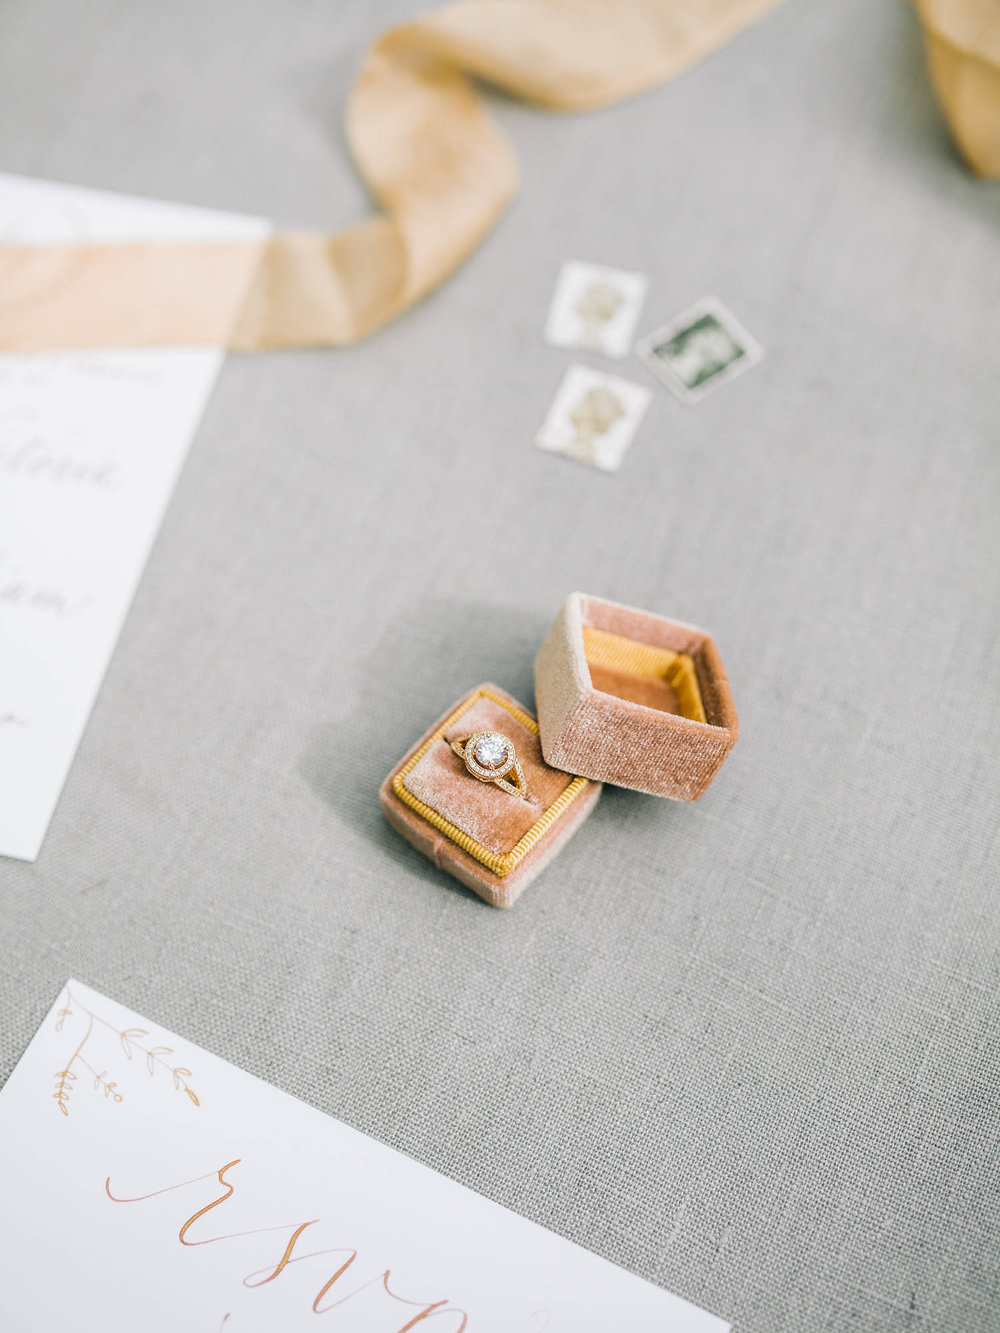 Top 3 Things You Need to Do Before Booking Your Wedding Suppliers | Aleeka Events: Wedding and Event Planner & Stylist | UK and London | Photography – Amy O'Boyle | http://aleekaevents.co.uk/blog/top-3-things-you-should-do-before-booking-your-wedding-suppliers